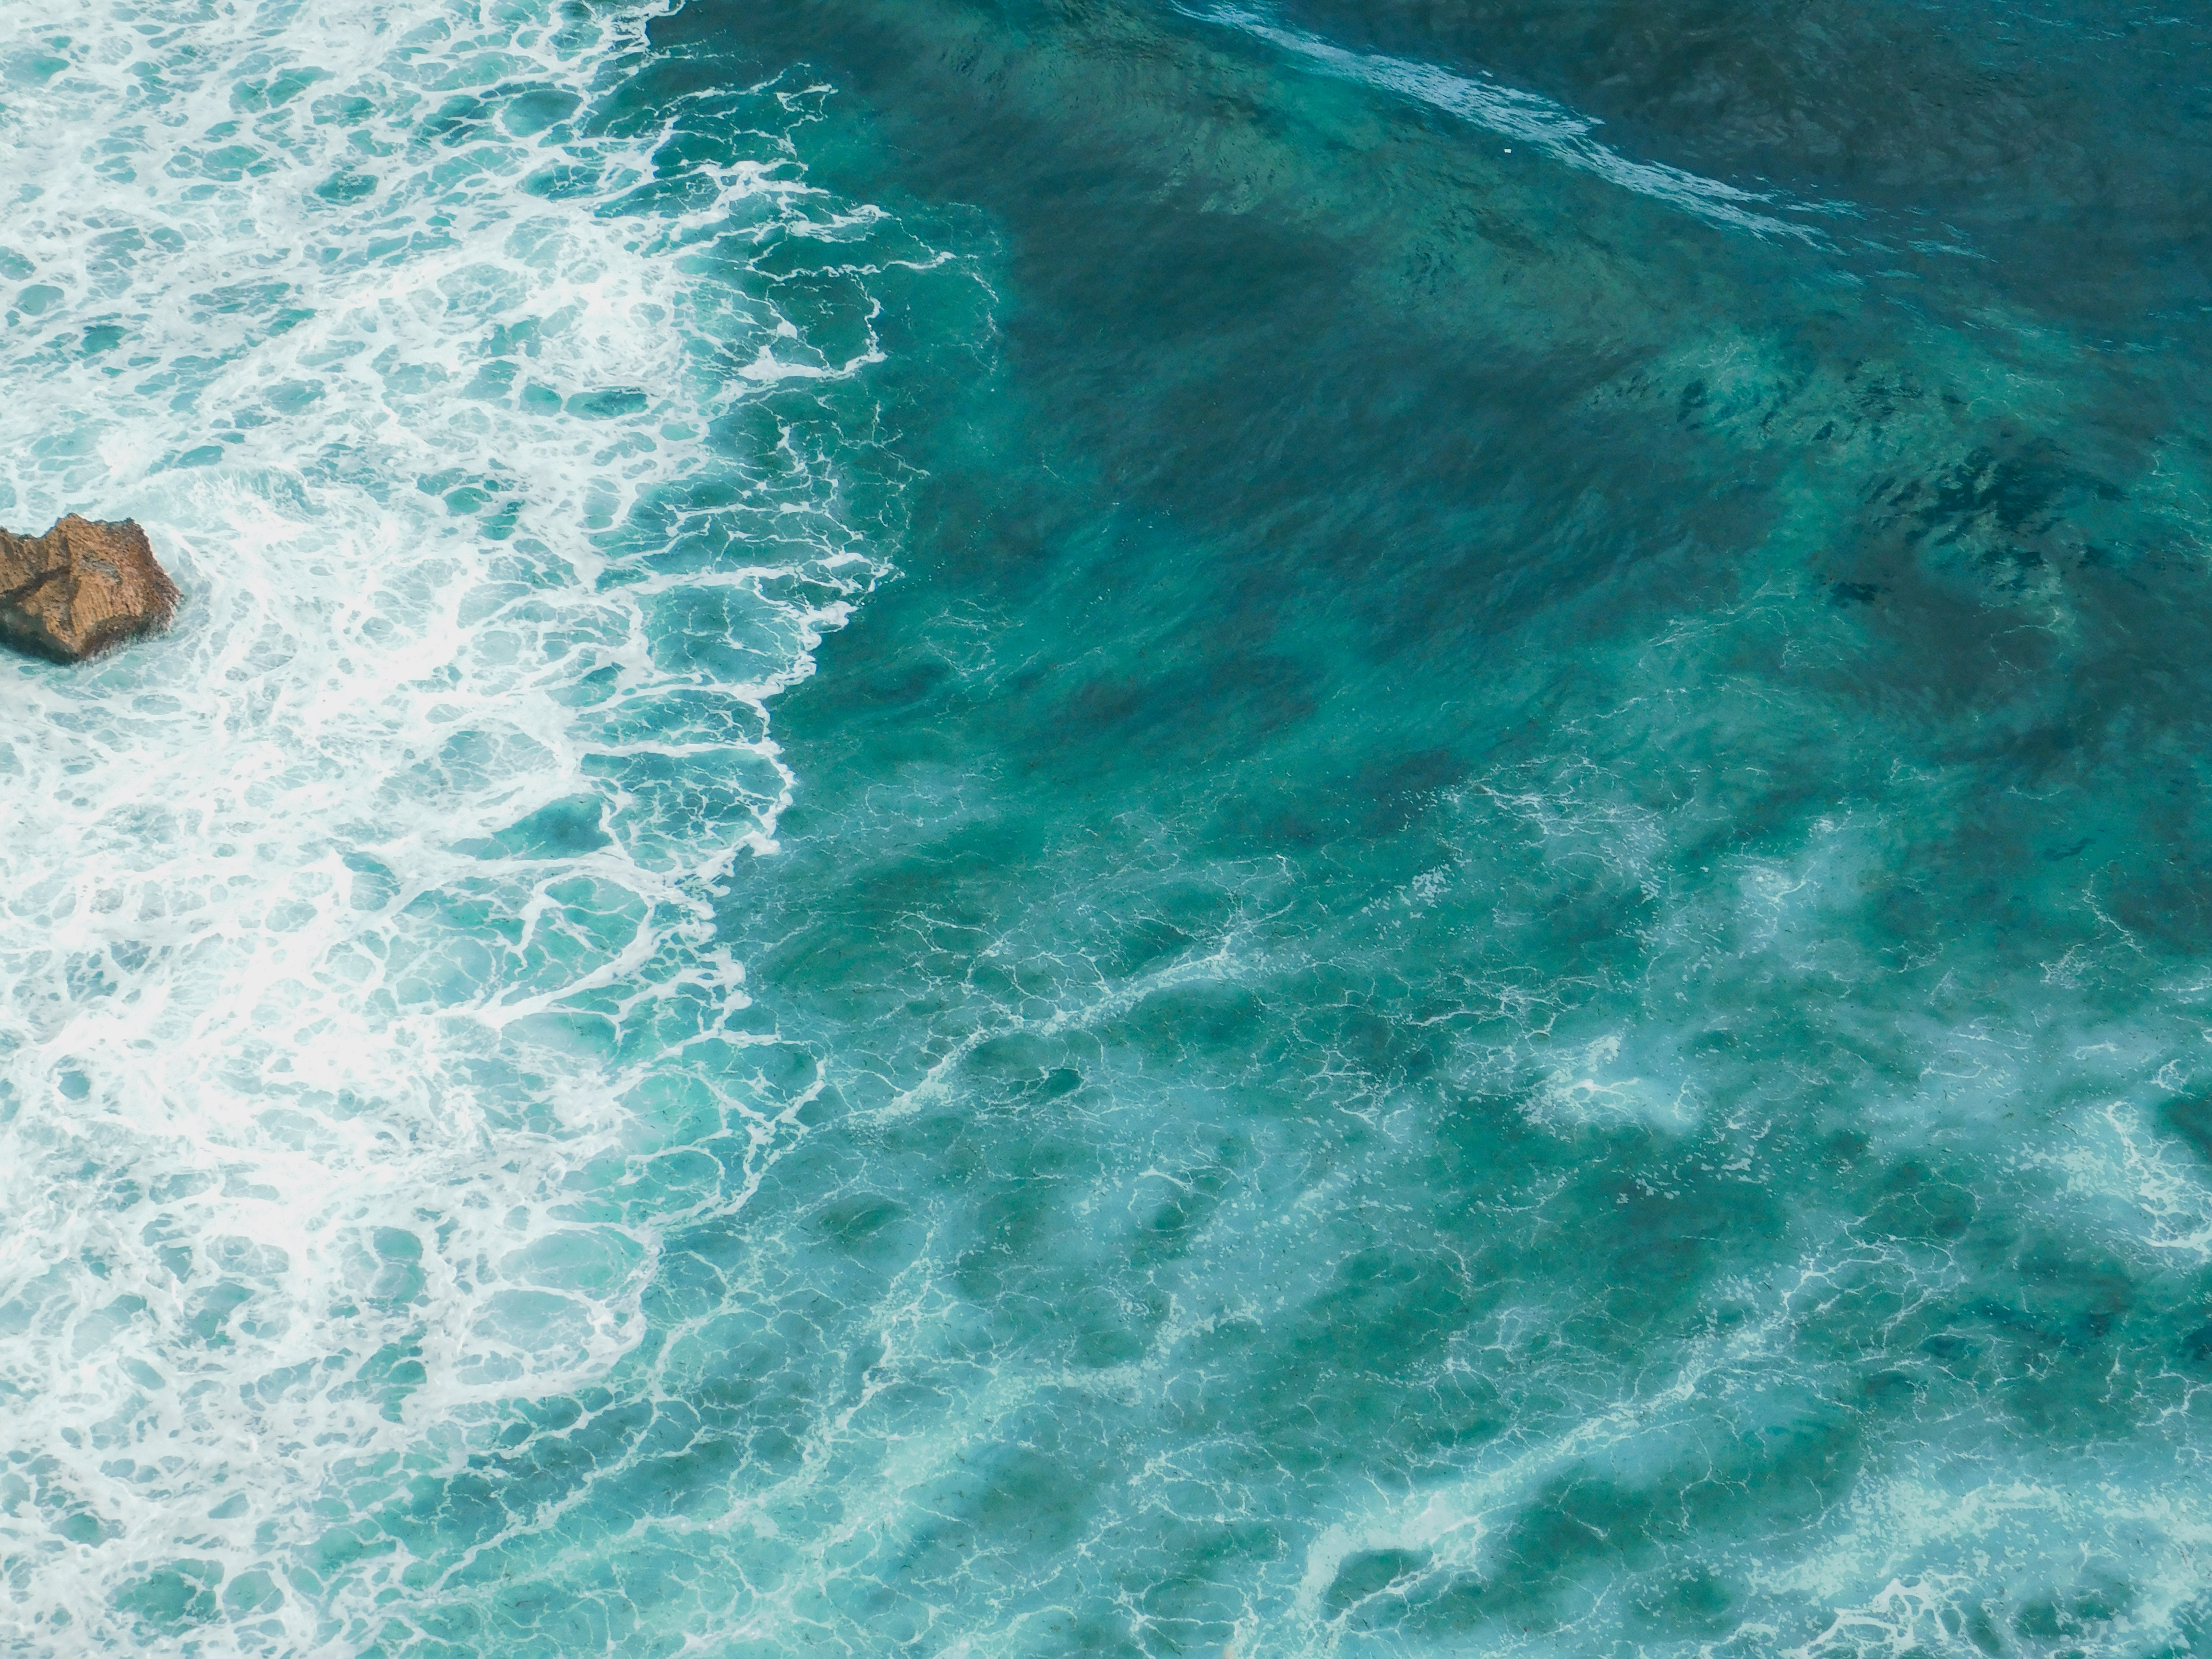 82812 free download Turquoise wallpapers for phone, Nature, Sea, Wave, Surface, Water Turquoise images and screensavers for mobile